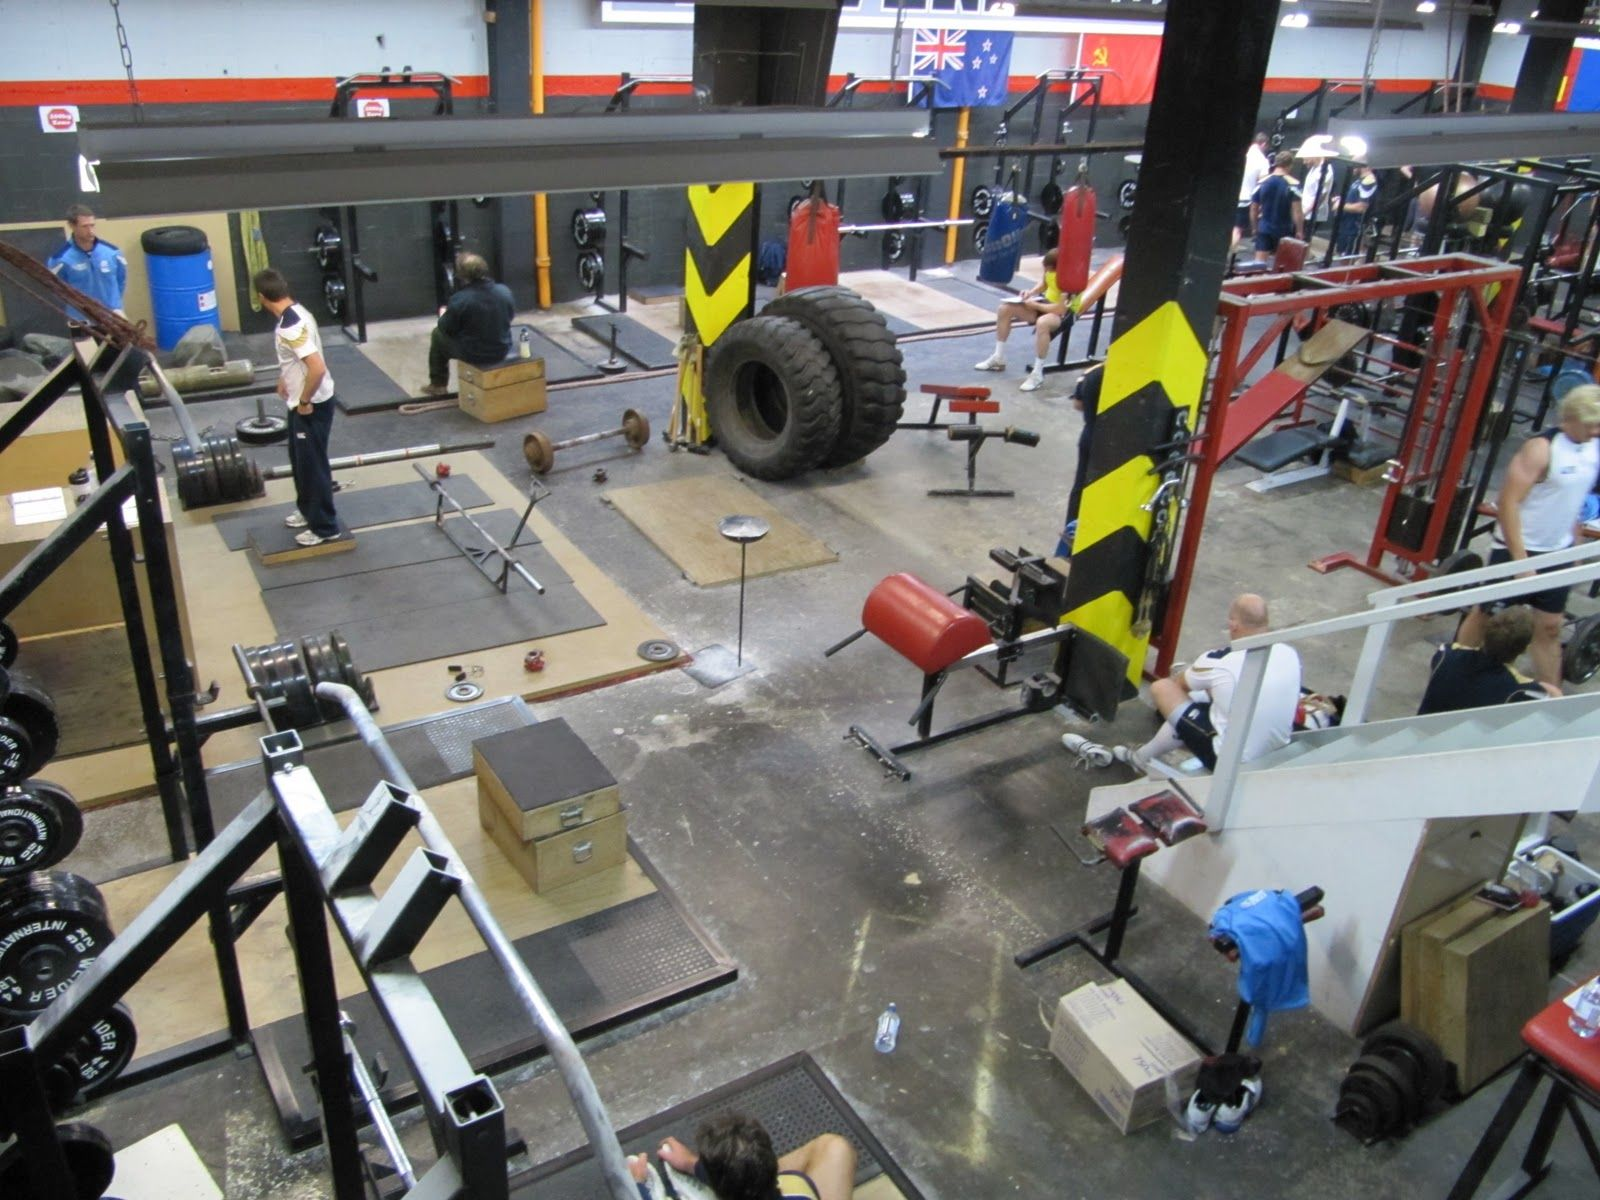 Images about gym s design on pinterest home gyms a gym and search - Warehouse Gym Design Google Search Crossfit Box Design Ideas Pinterest Gym Design Gym And Warehouse